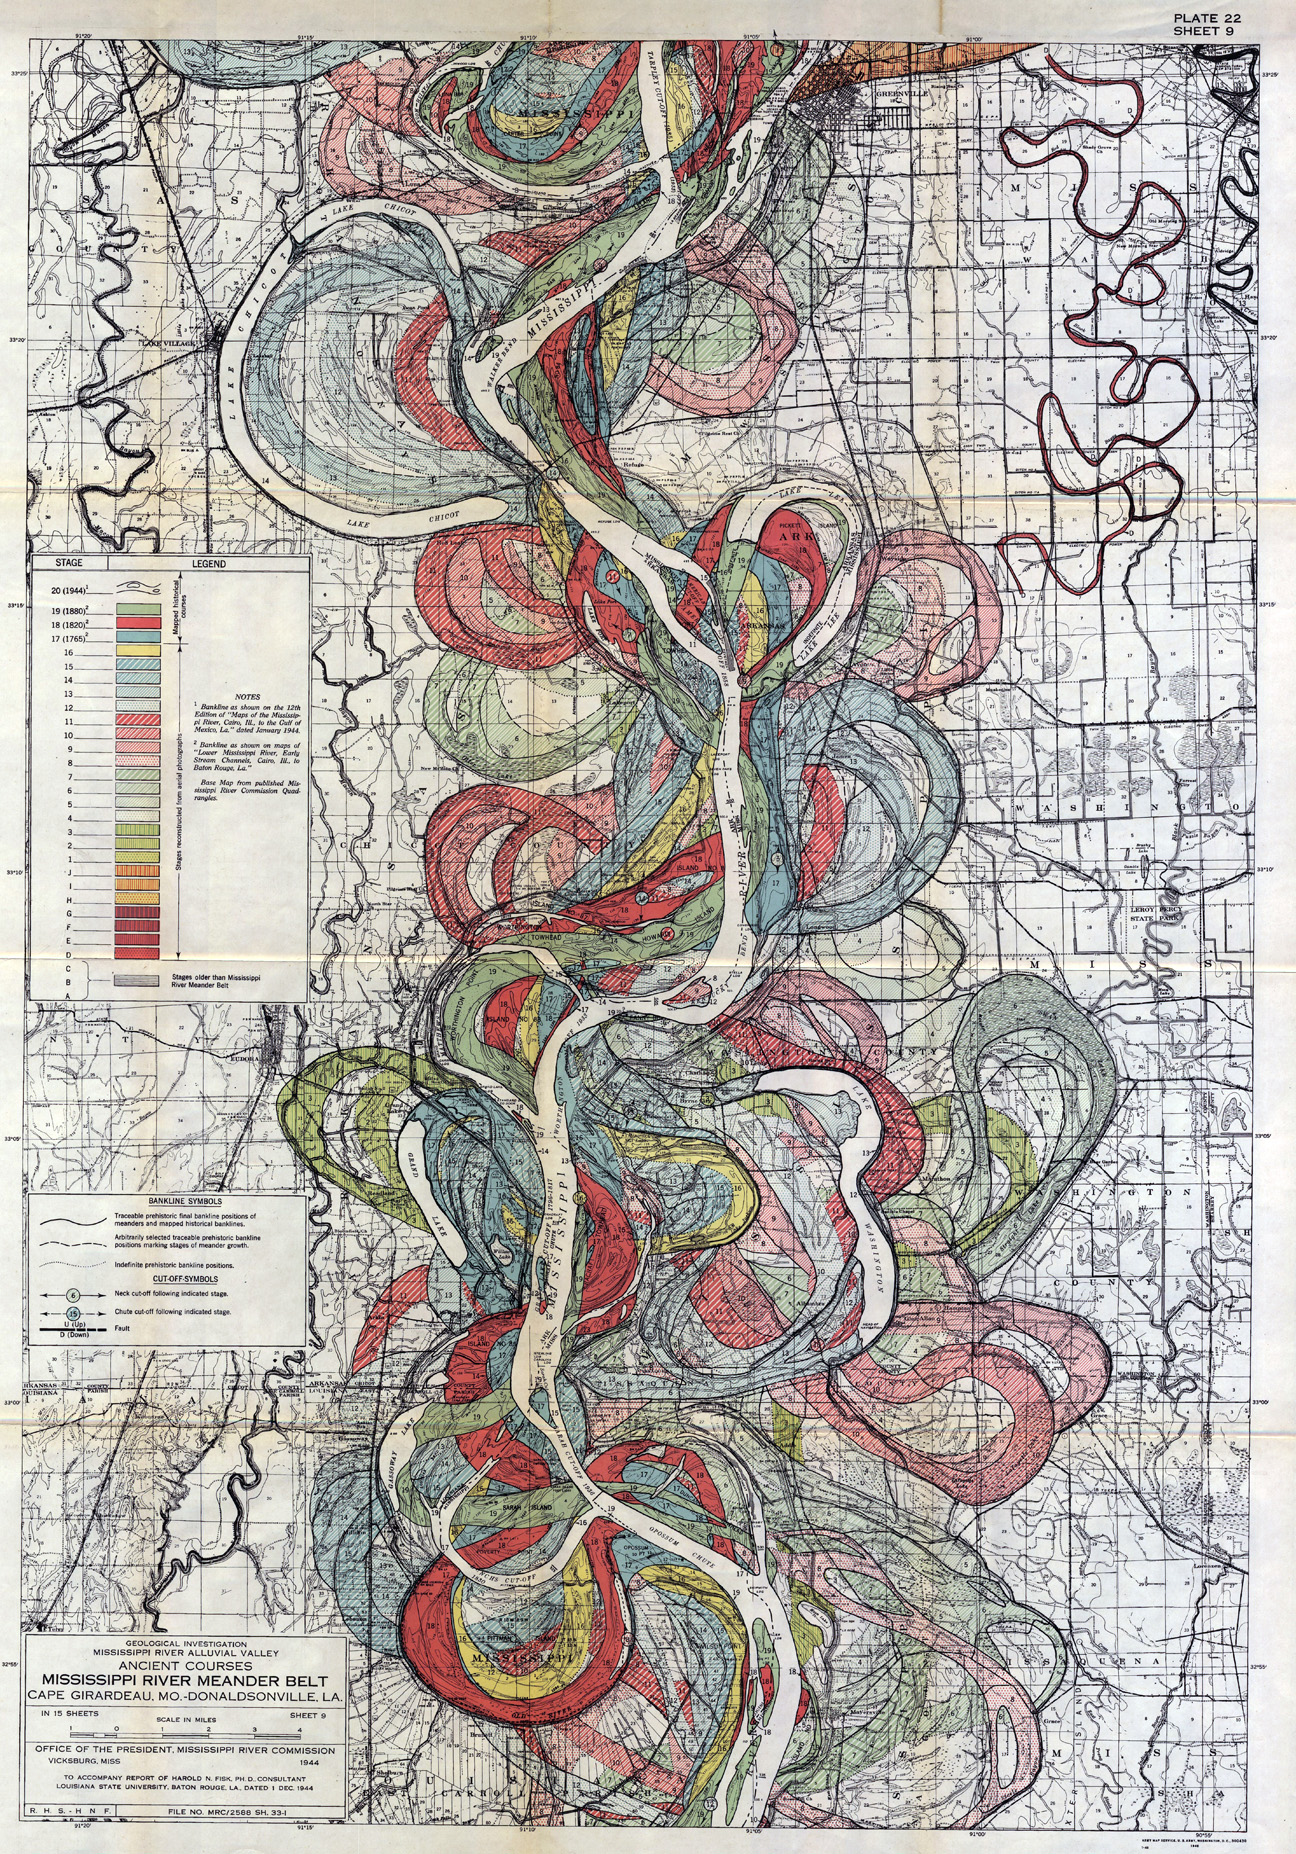 Mississippi Maps are Works of Art | Kotara Studio on louisiana's map, maryland's map, kentucky's map, maine's map, oklahoma's map, mississippi regions map, ms road map, georgia's map, michigan's map, indiana's map, missouri's map, new mexico's map, mississippi county map, mississippi state map, new jersey's map,